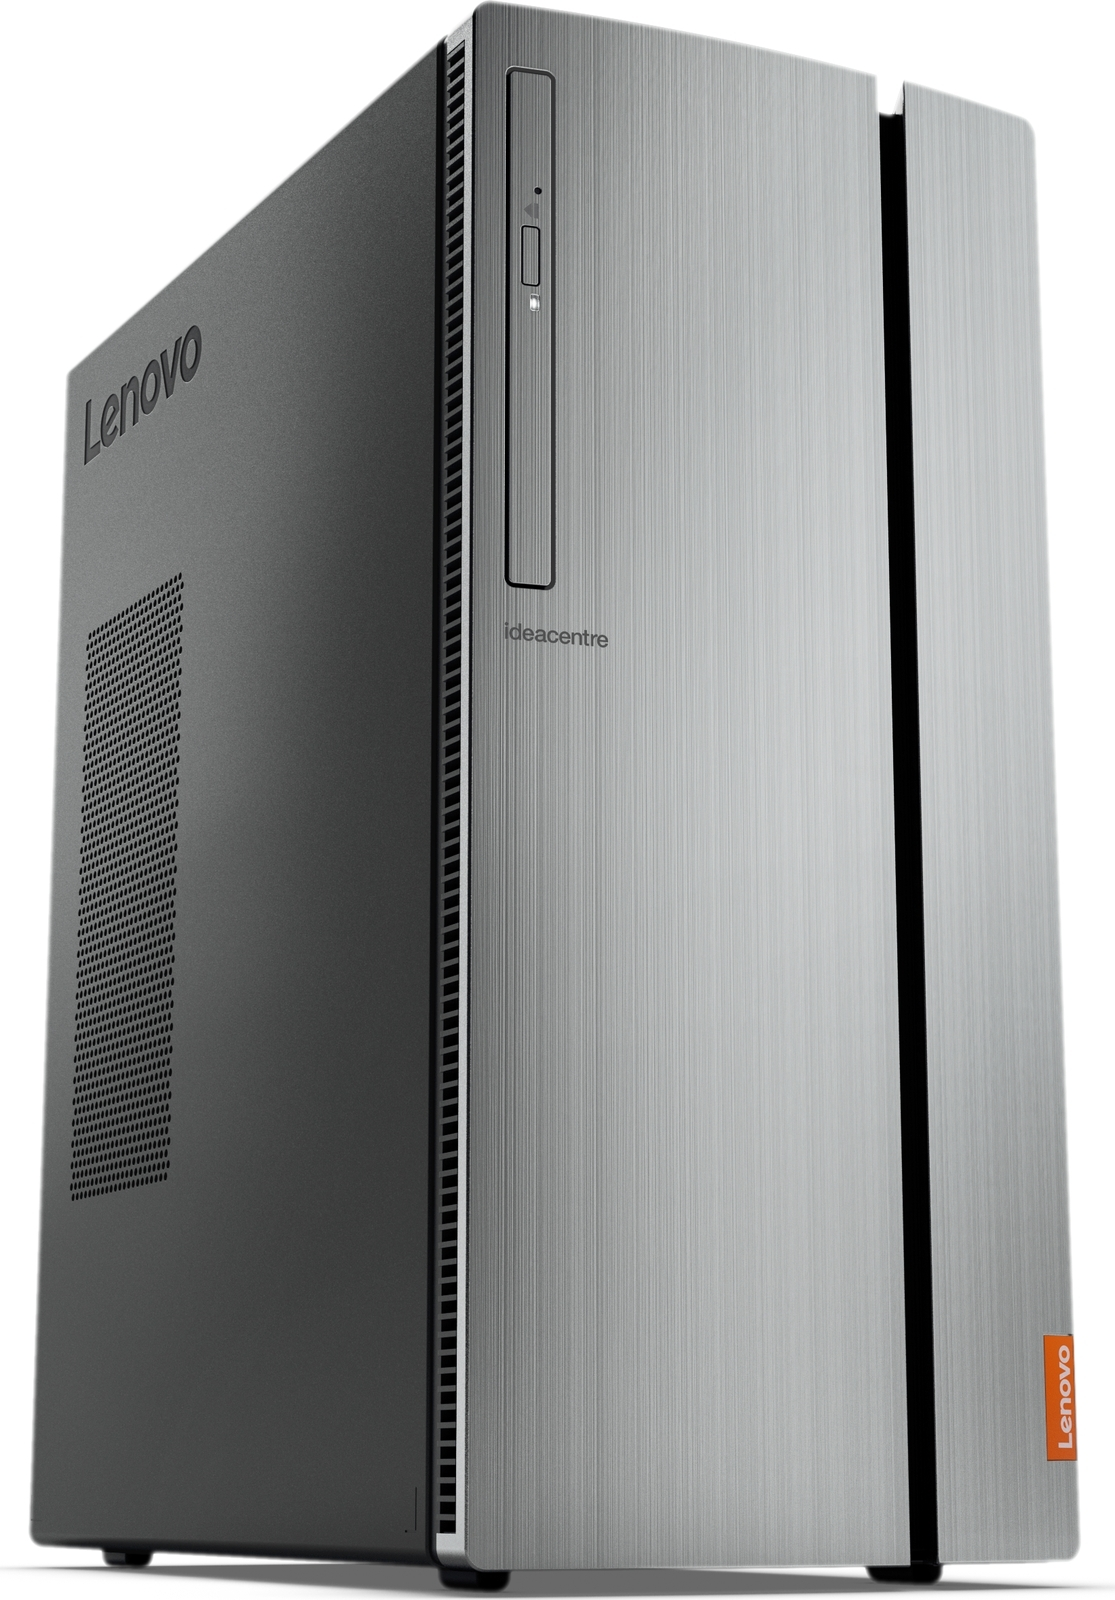 Системный блок Lenovo IdeaCentre 720-18ASU MT, 90H1004PRS, черный, серебристый системный блок lenovo legion t530 28icb 90jl007jrs черный